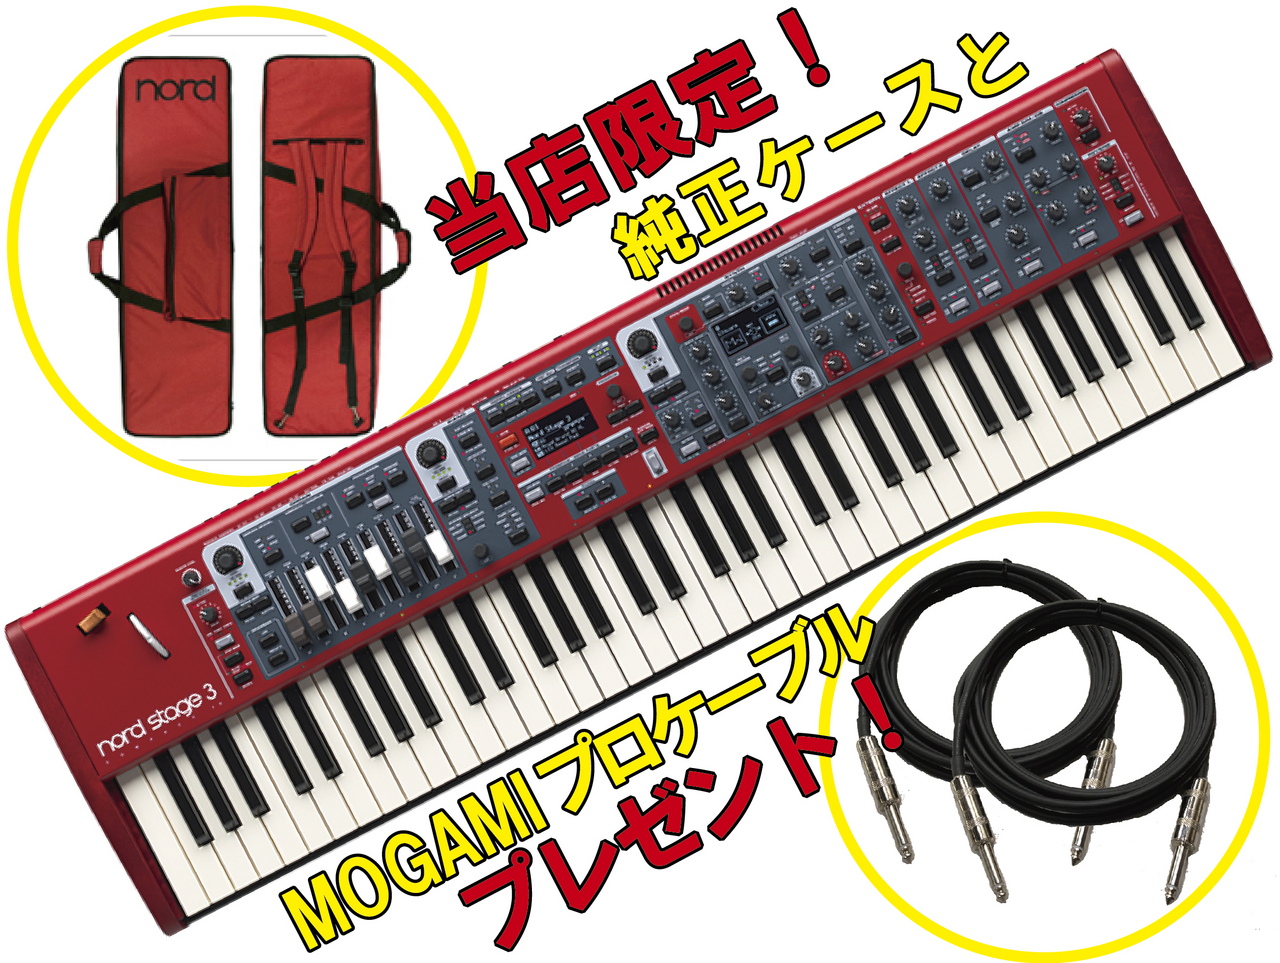 CLAVIA Nord Stage 3 Compact◆京デジ限定! 【ローン分割手数料0%(24回迄)】専用ケース&プロケーブルセット!